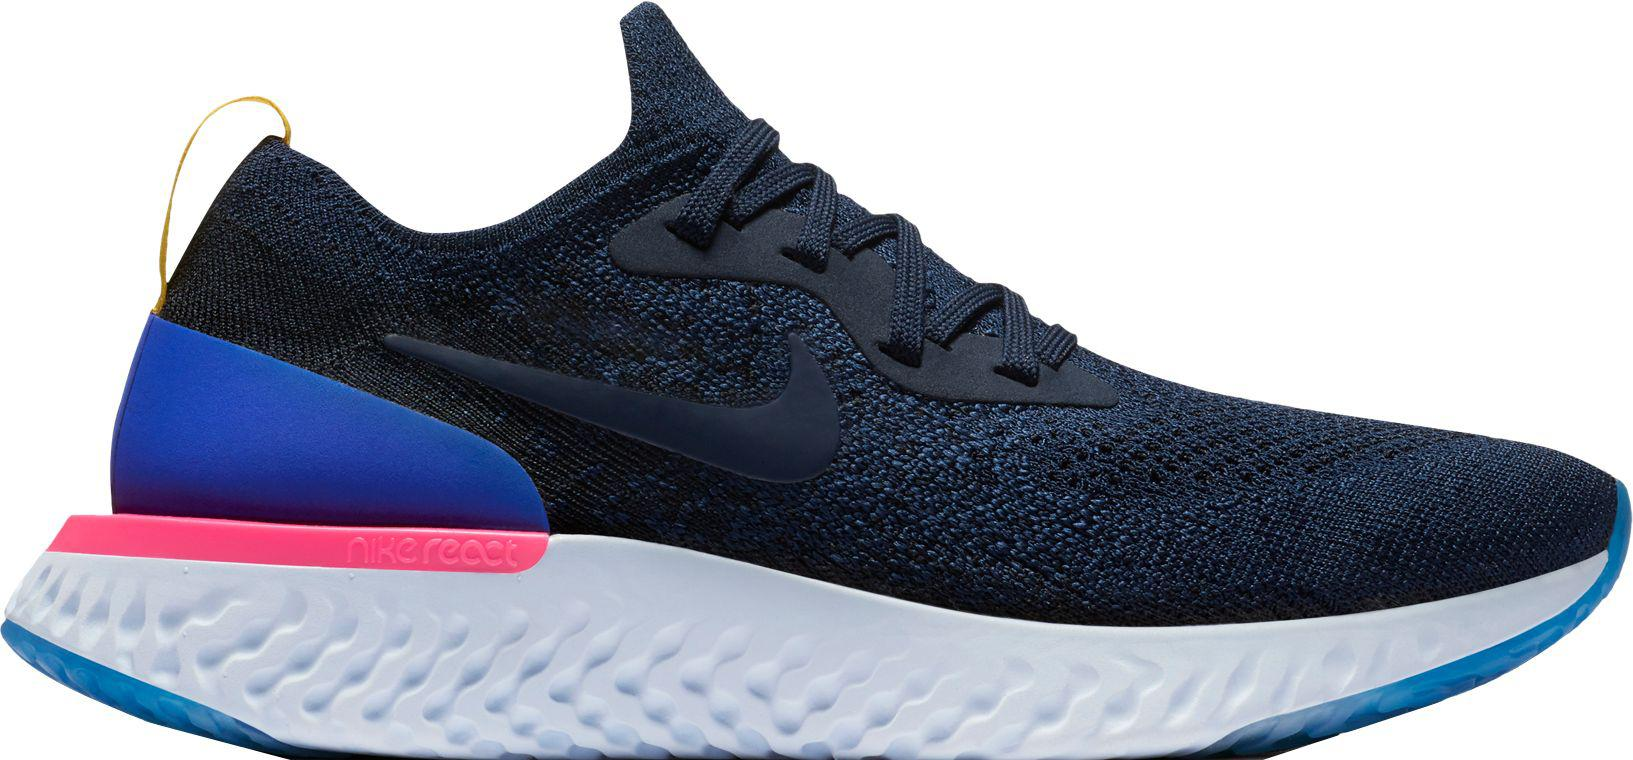 separation shoes 369e6 2fb6d ... best nike blue epic react flyknit running shoes for men lyst c6314 5fb84